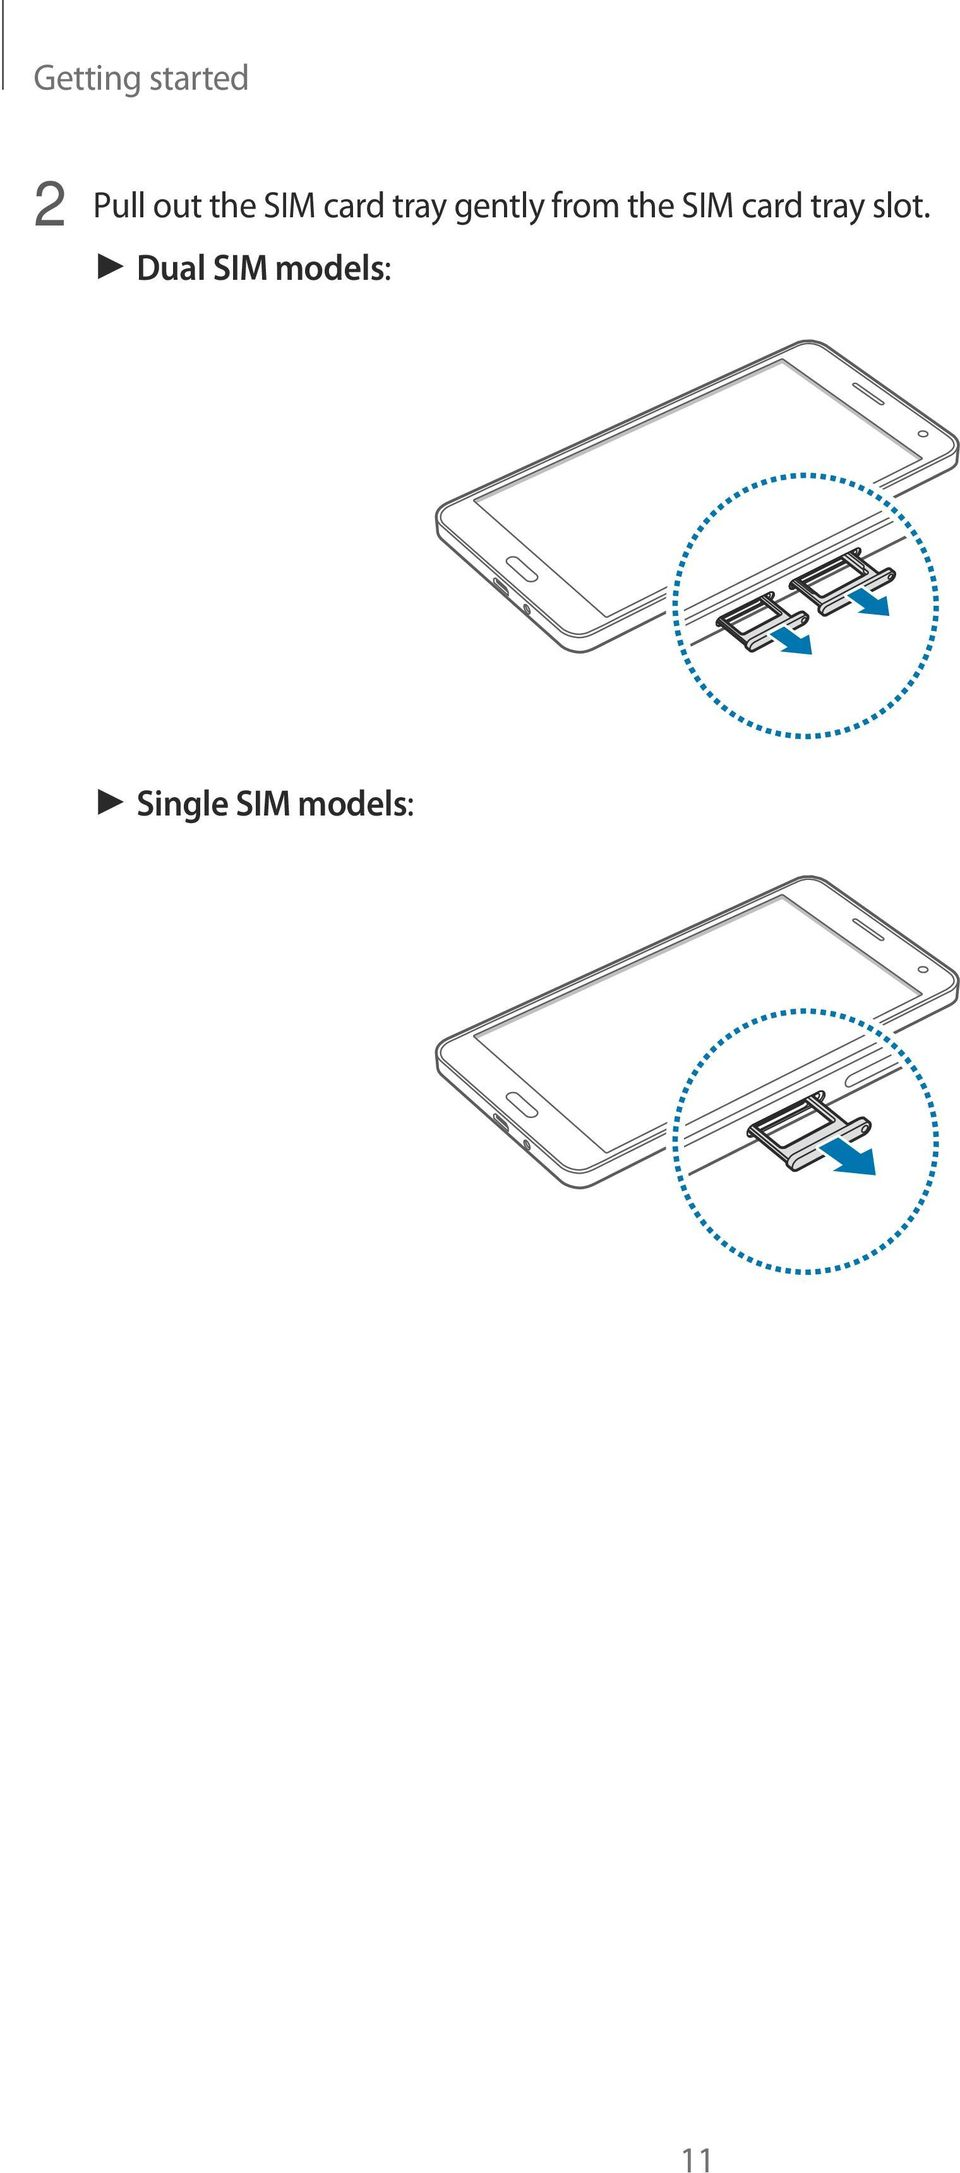 the SIM card tray slot.